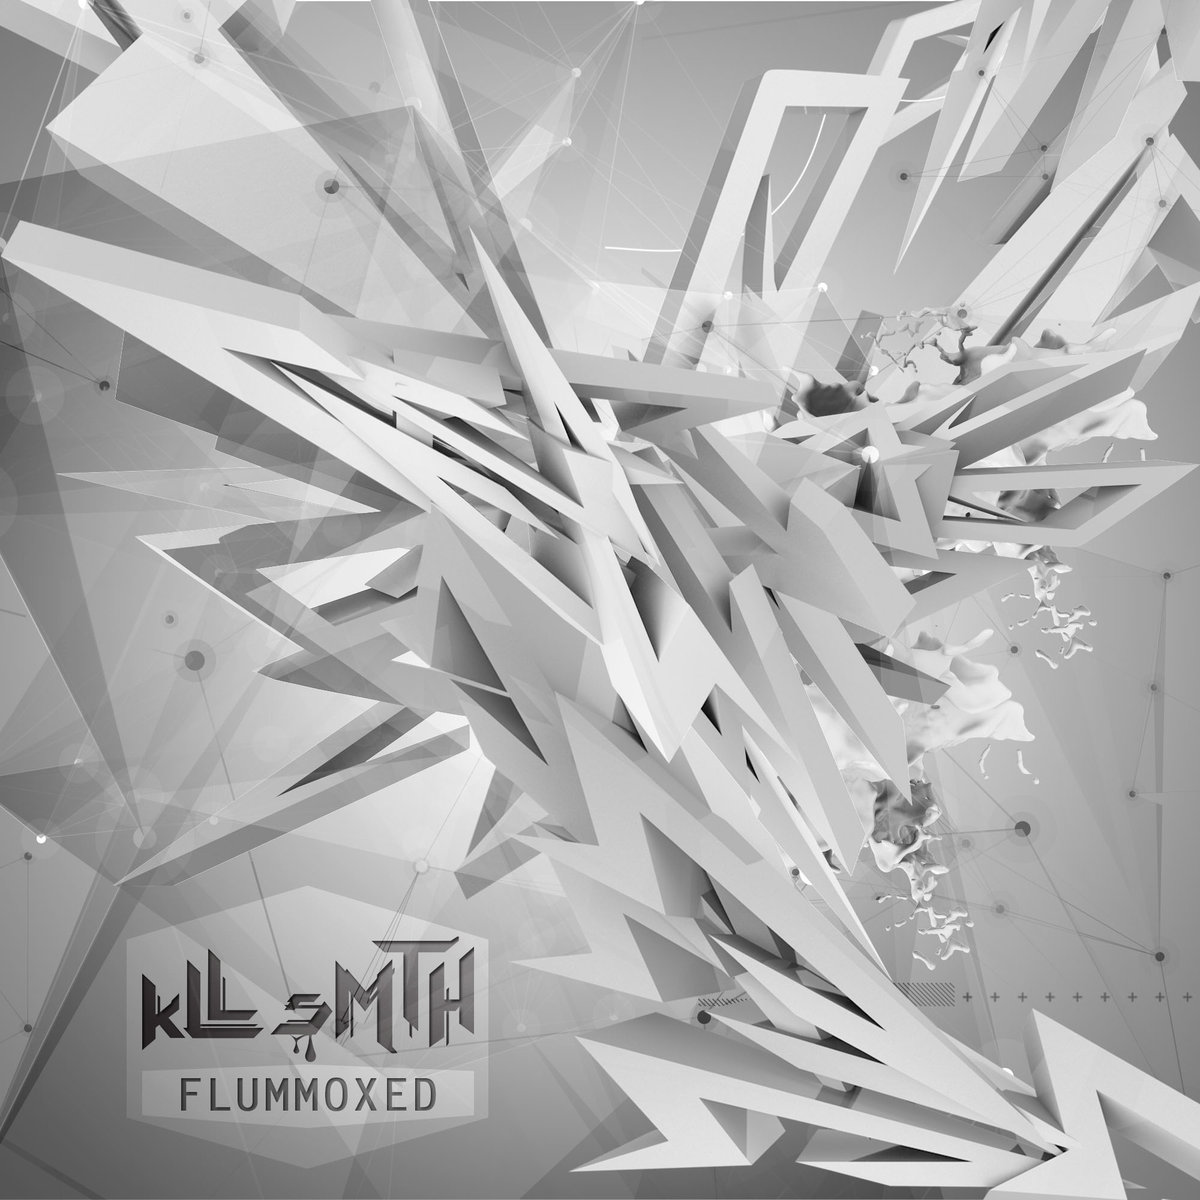 flummoxed EP art